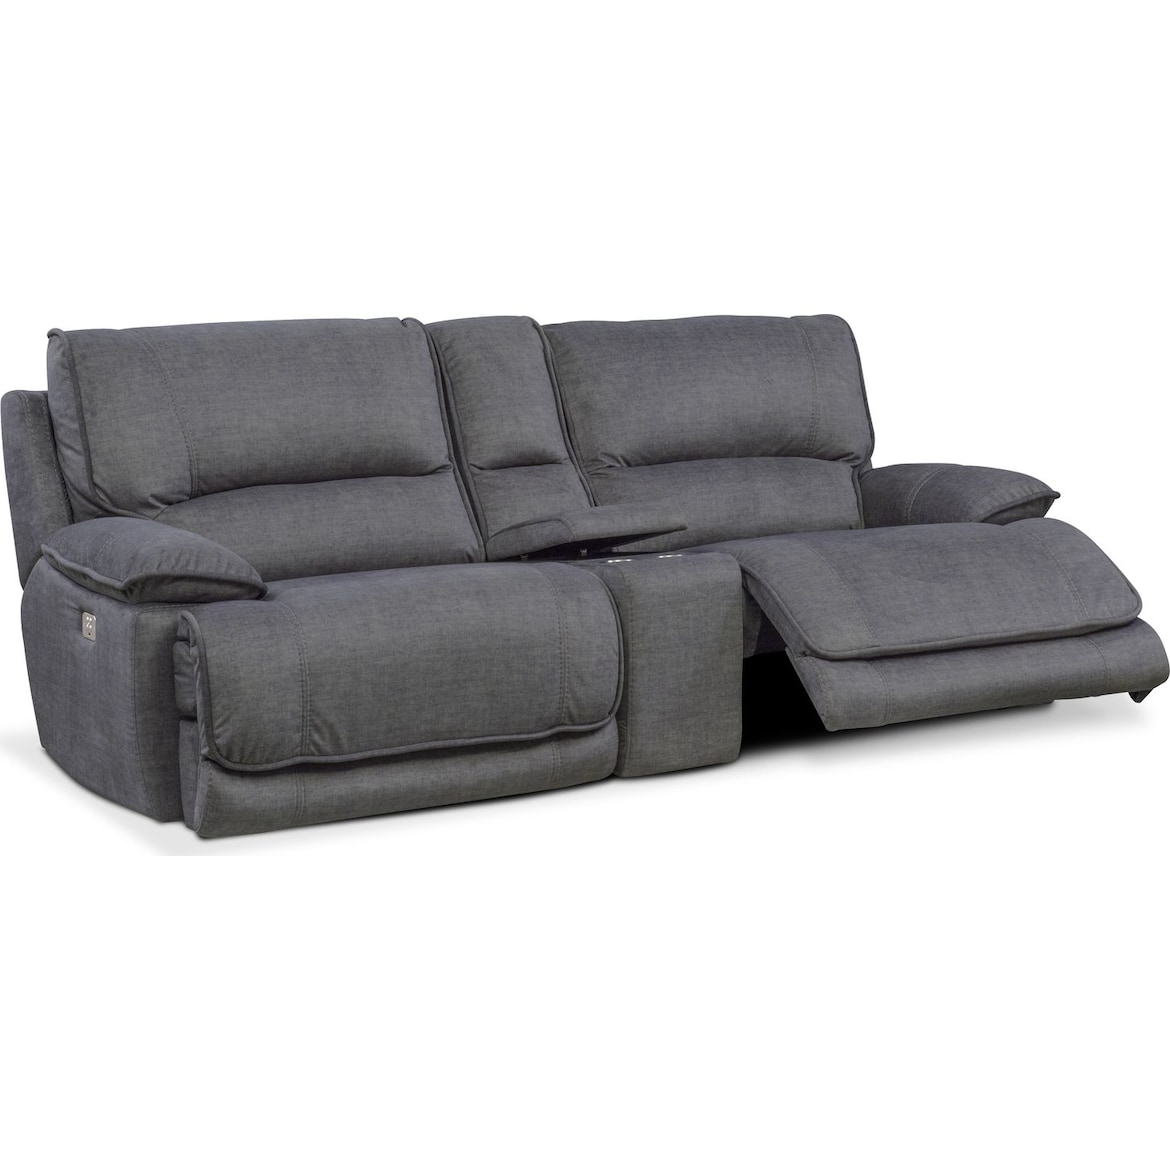 Stupendous Mario 3 Piece Dual Power Reclining Sofa With Console Onthecornerstone Fun Painted Chair Ideas Images Onthecornerstoneorg